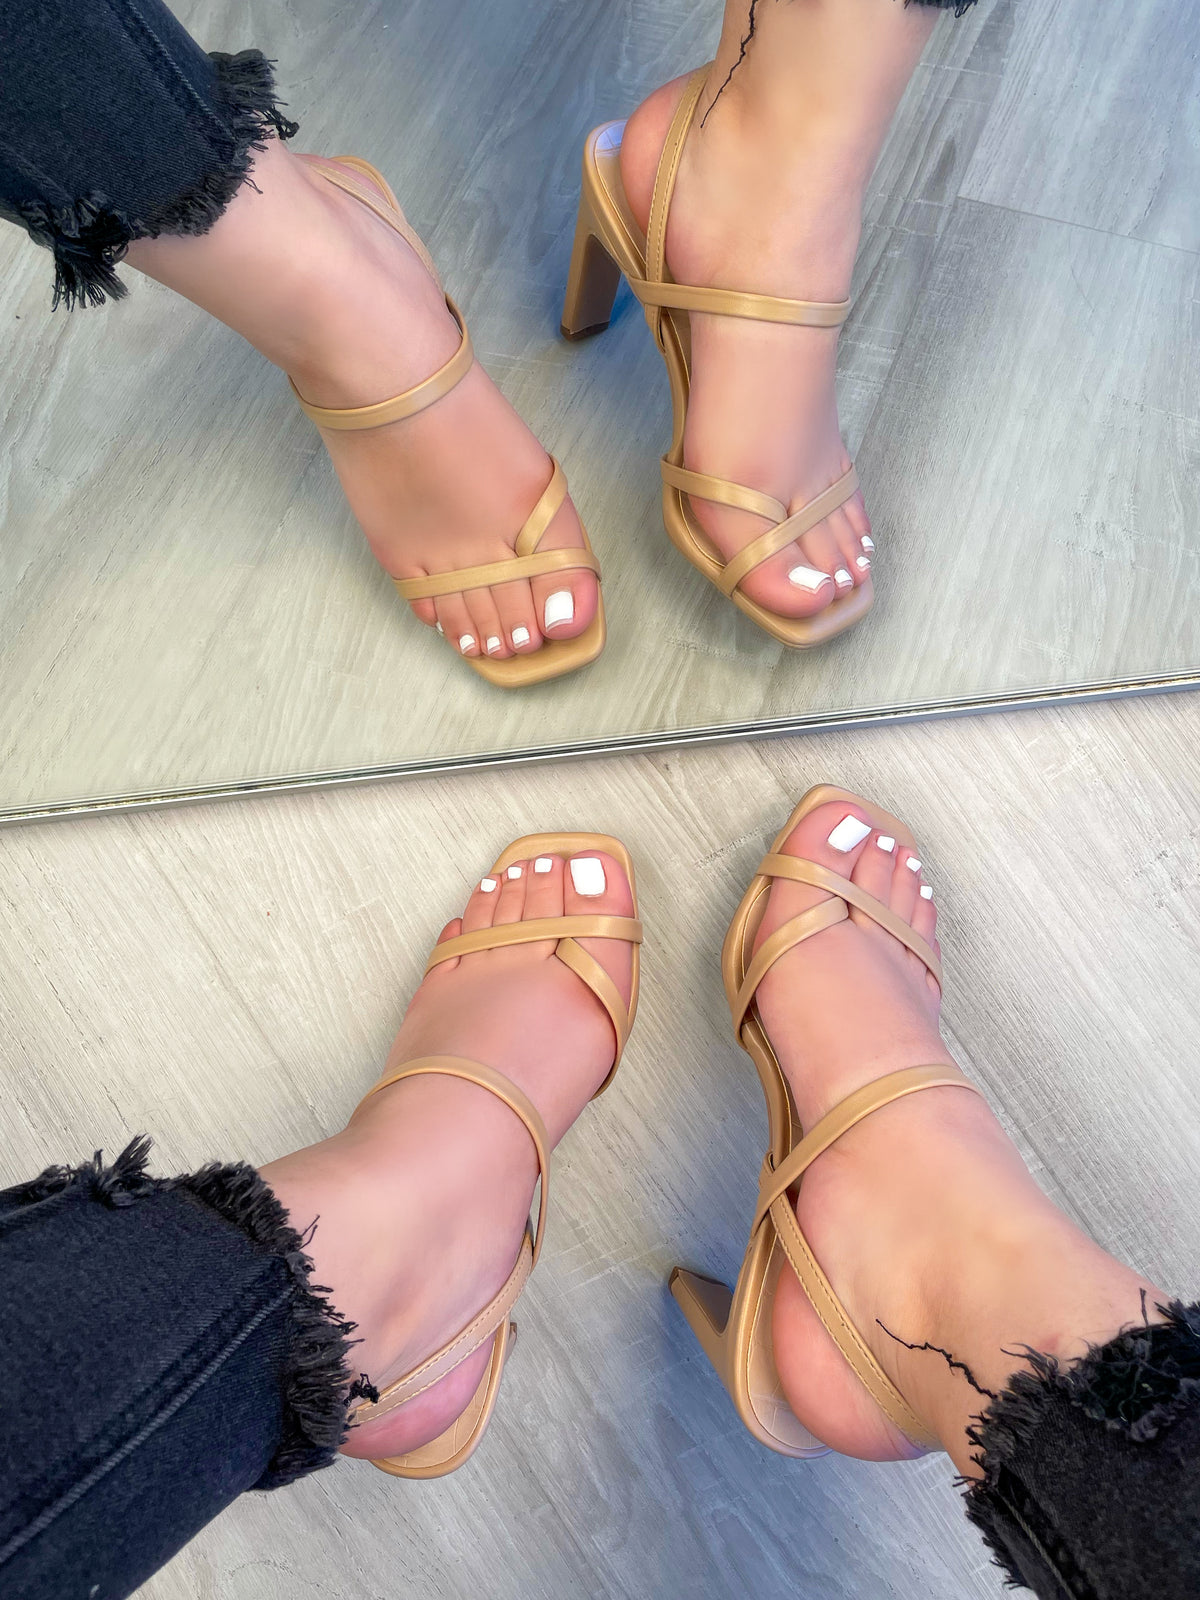 sand strap heels. criss cross strap, gold belt, adjustable straps